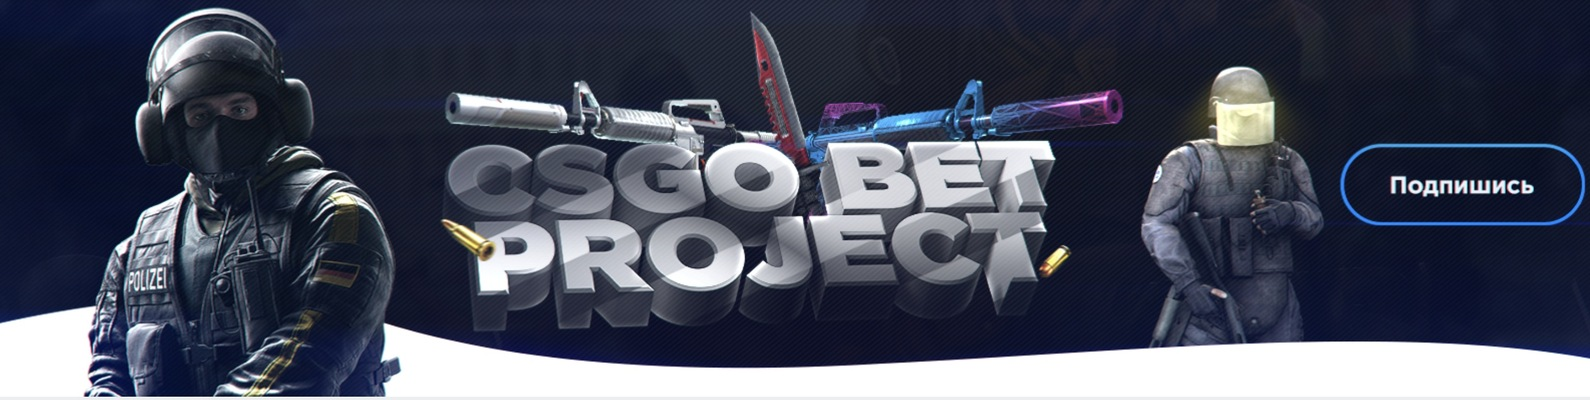 The syndicate project cs go betting teterow speedway gp betting